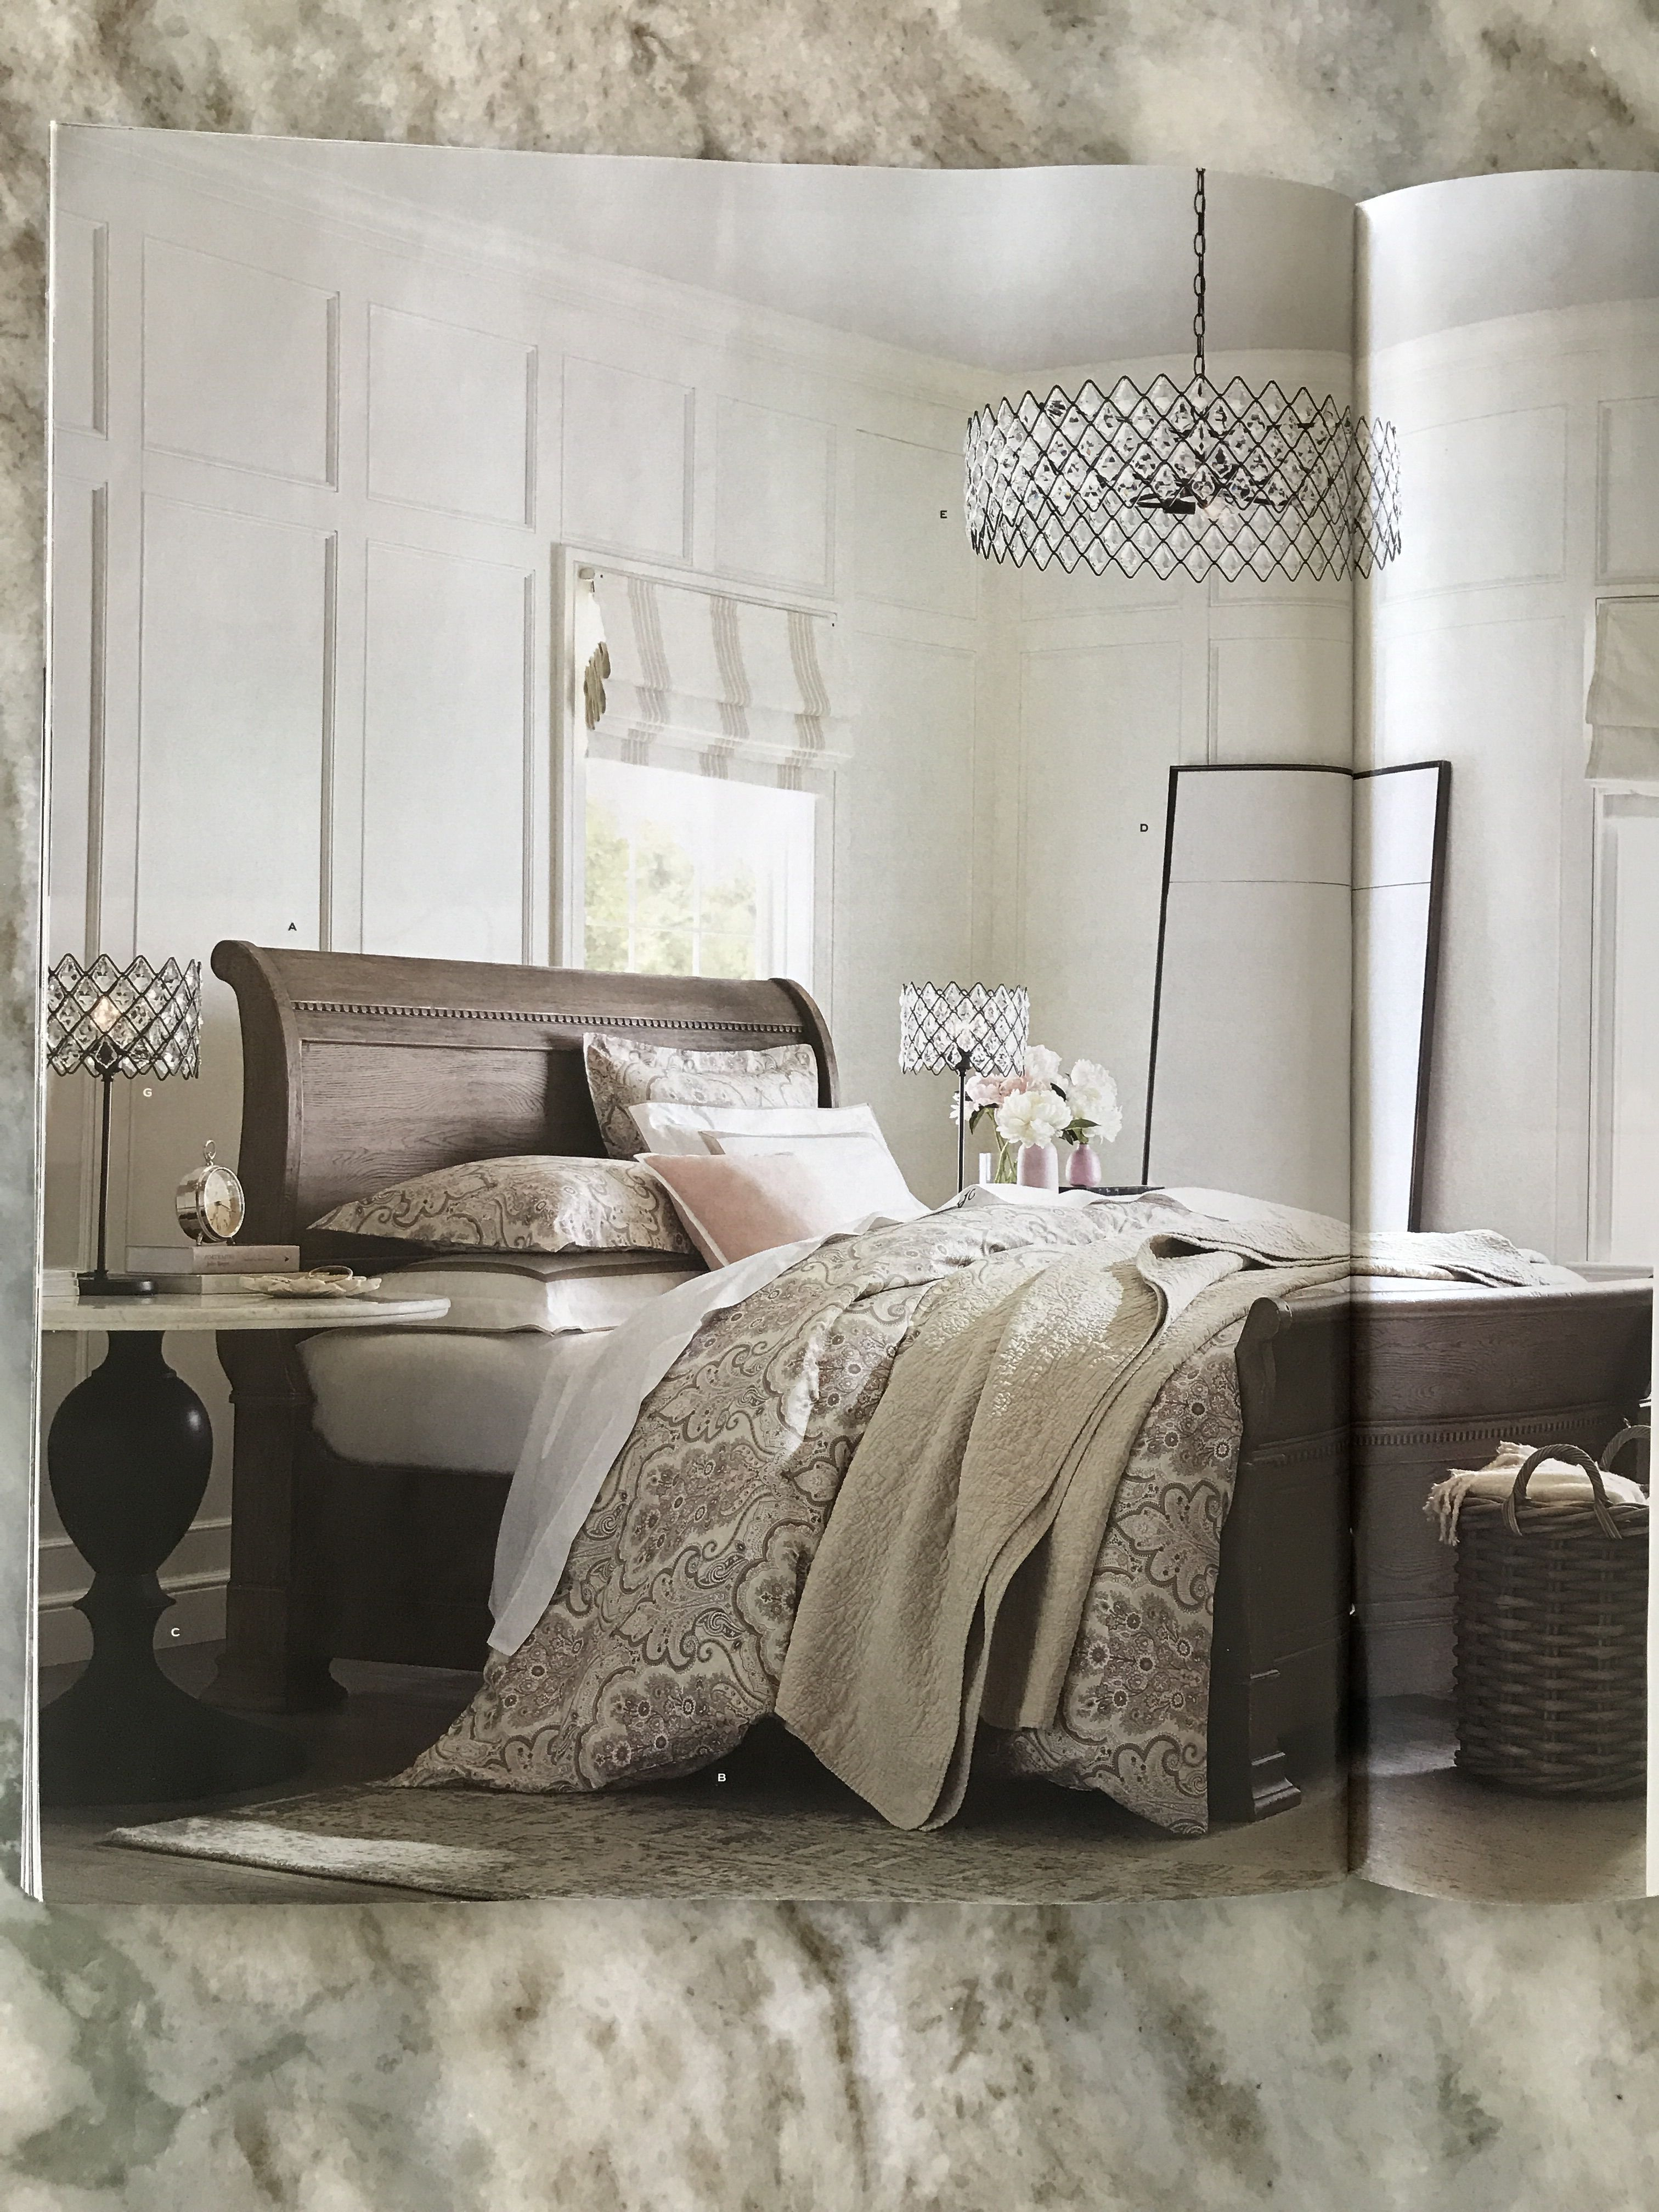 Pin by The Budget Babe on Bedroom Ideas   Barn bedrooms ...